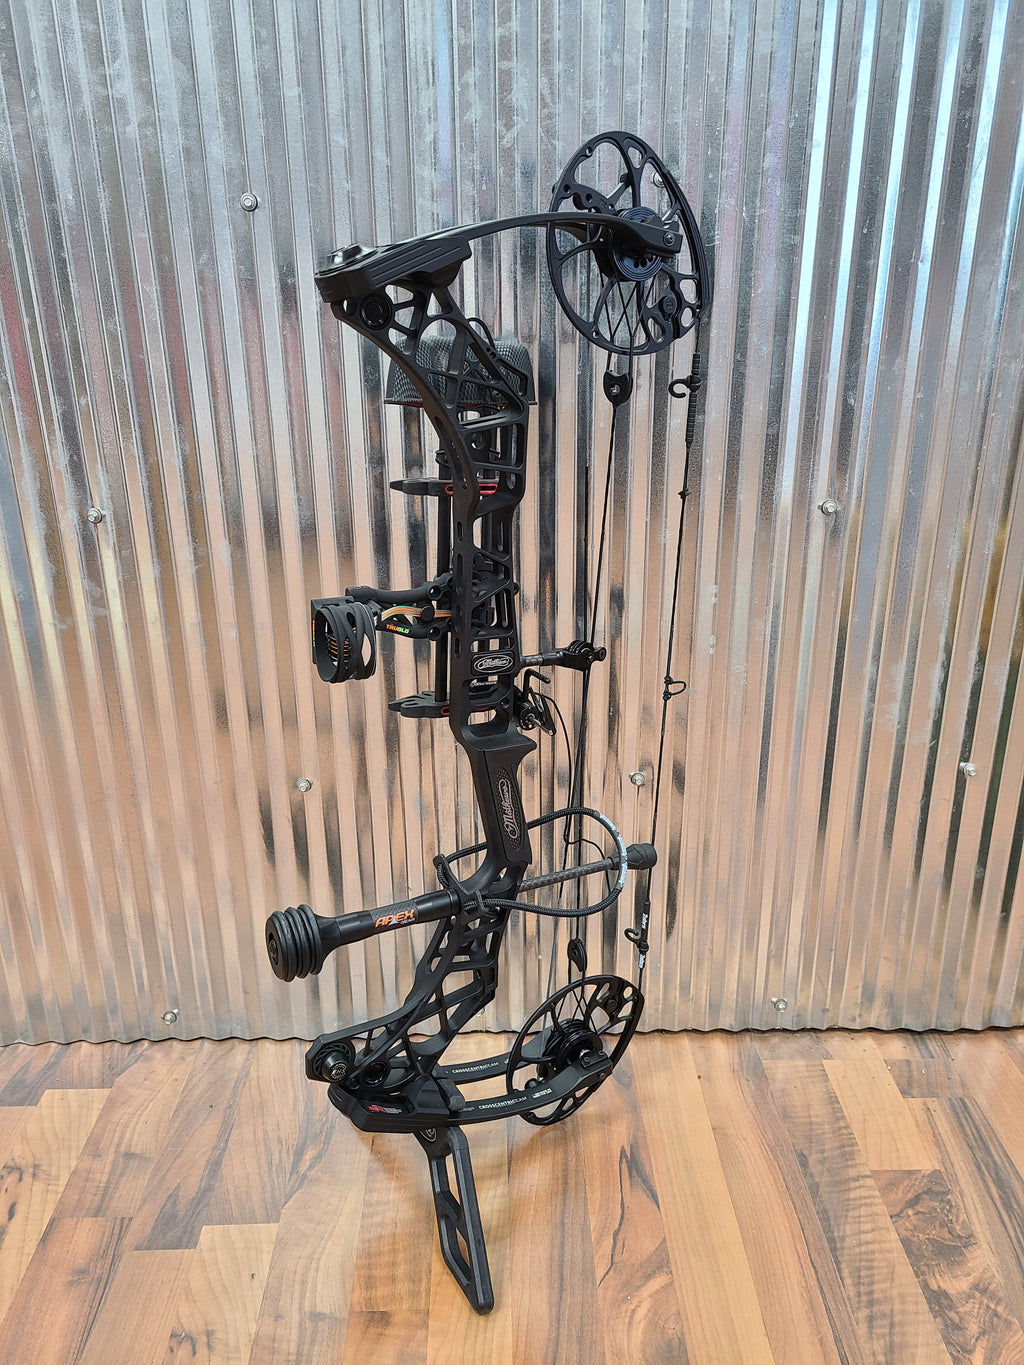 Mathews VXR 28 Standard Color Level 2 Package